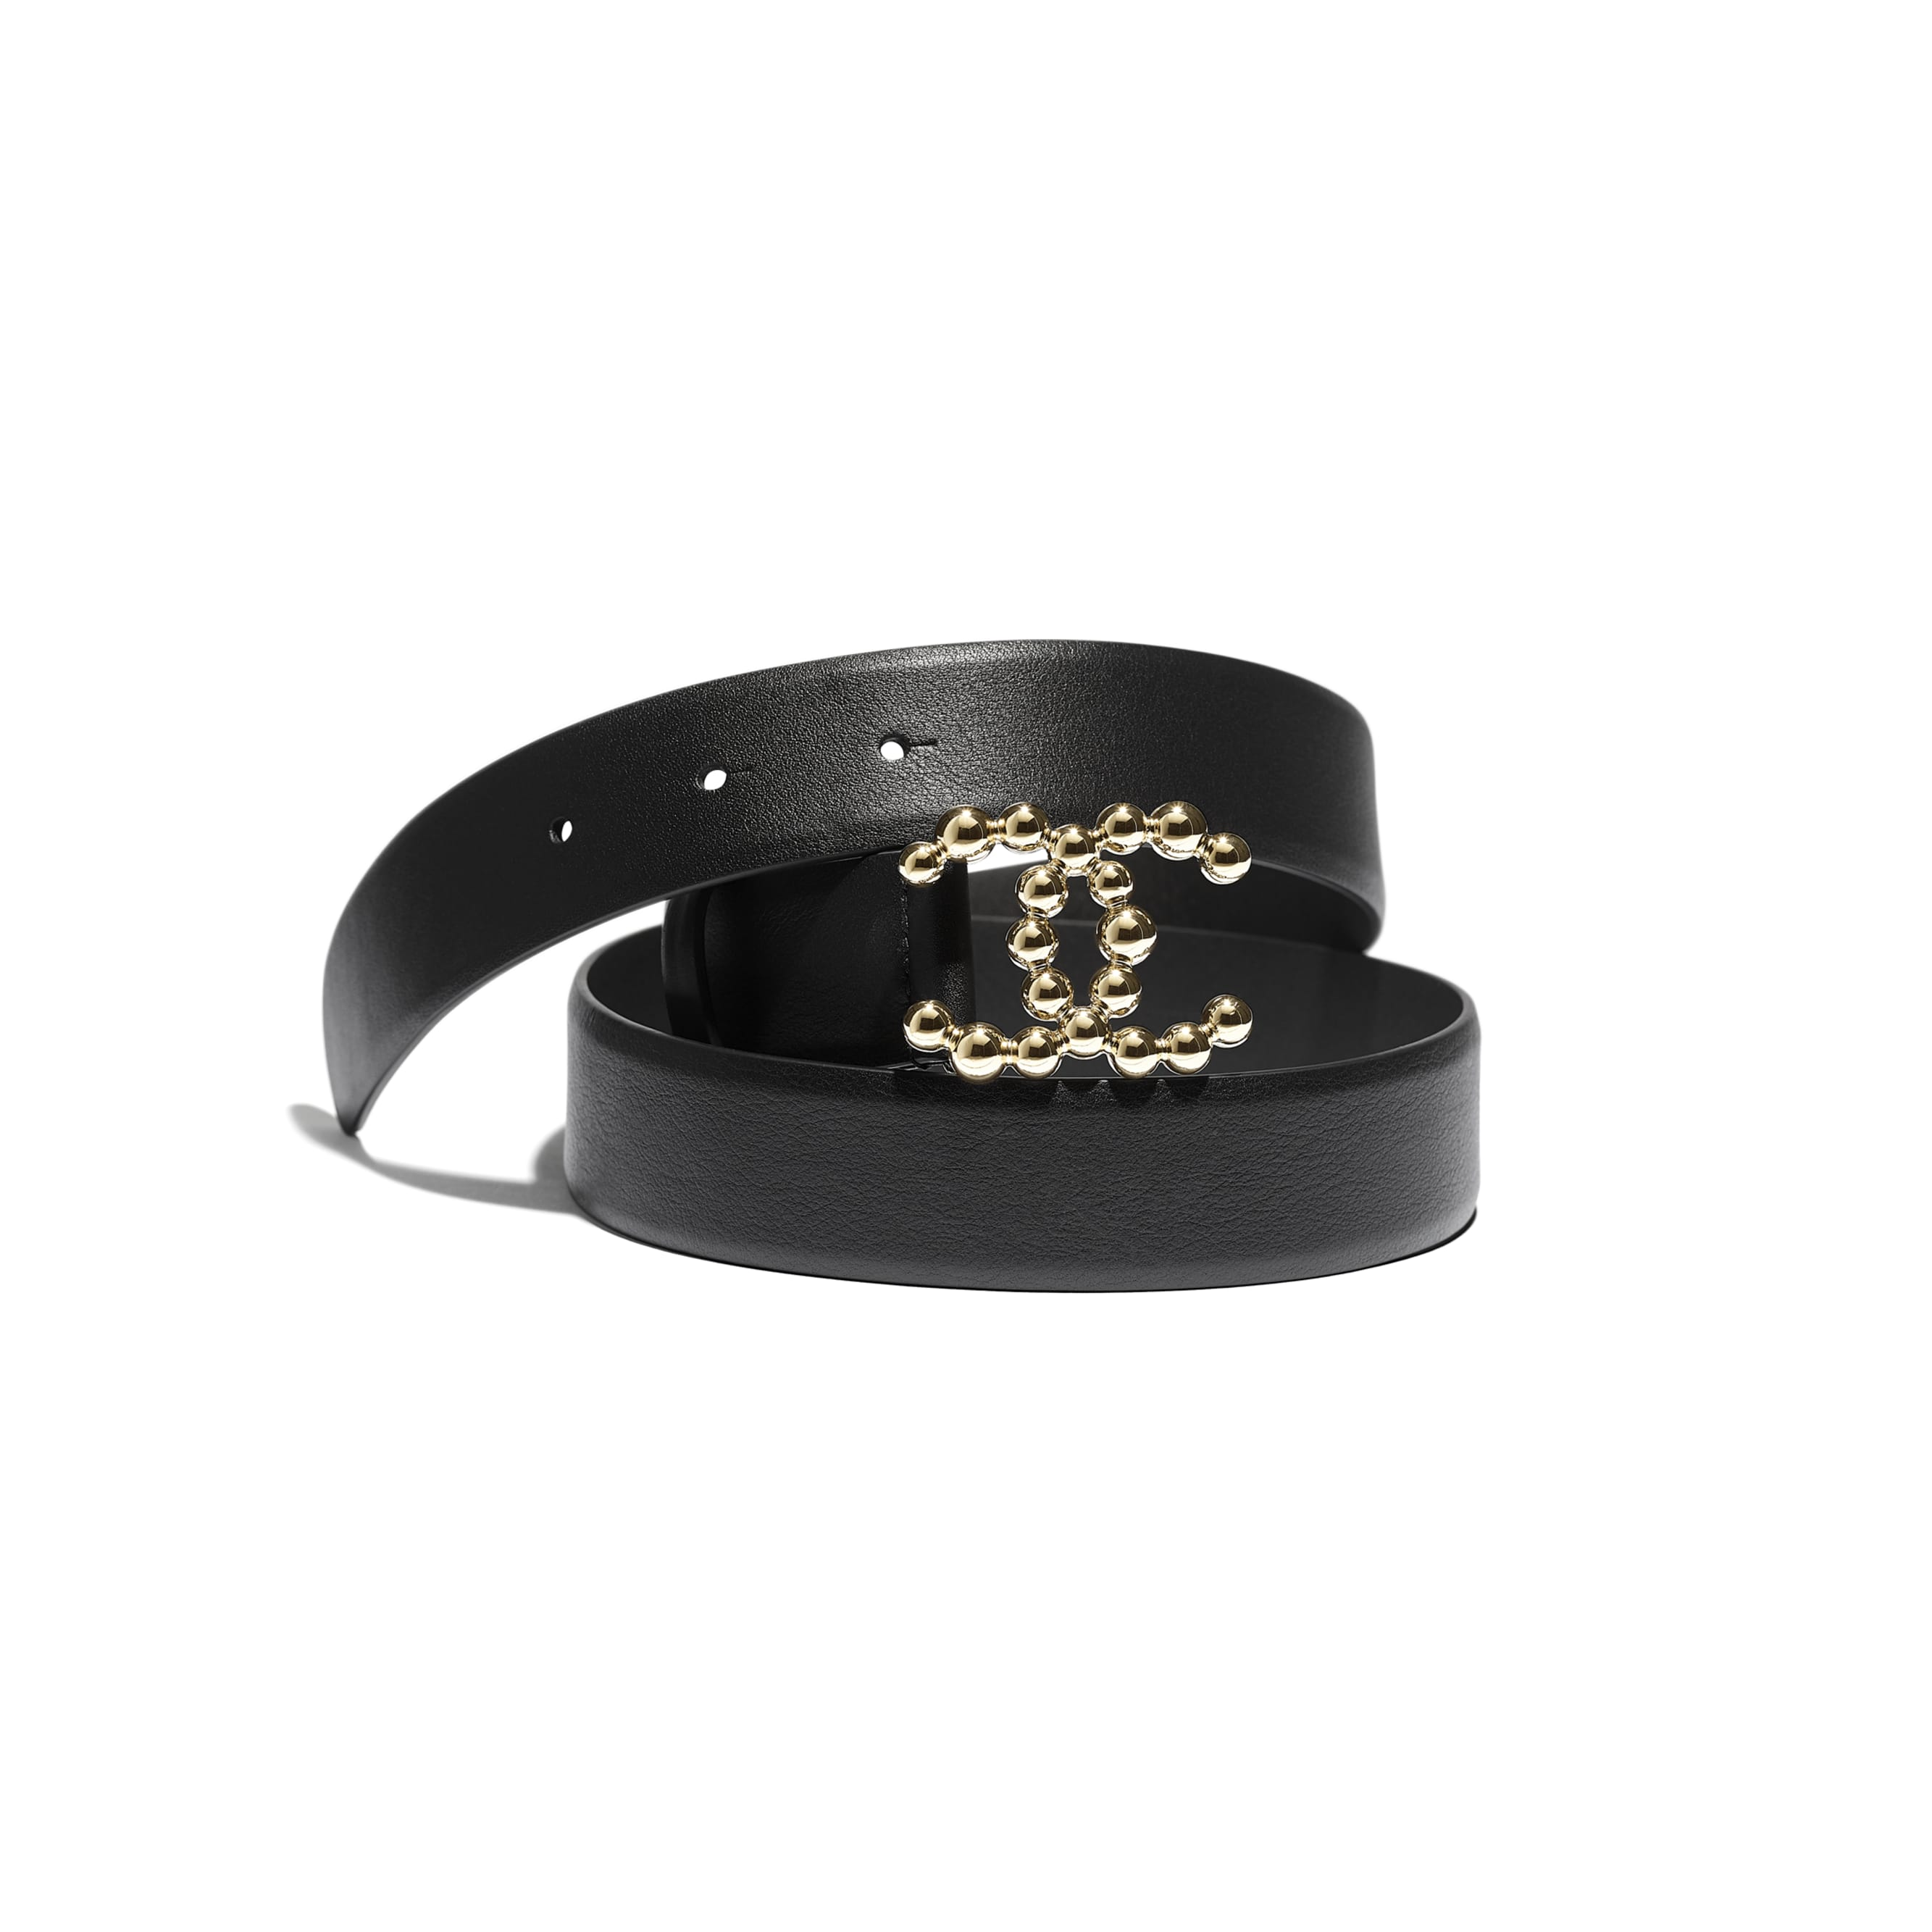 Belt - Black - Calfskin & Gold-Tone Metal - CHANEL - Default view - see standard sized version